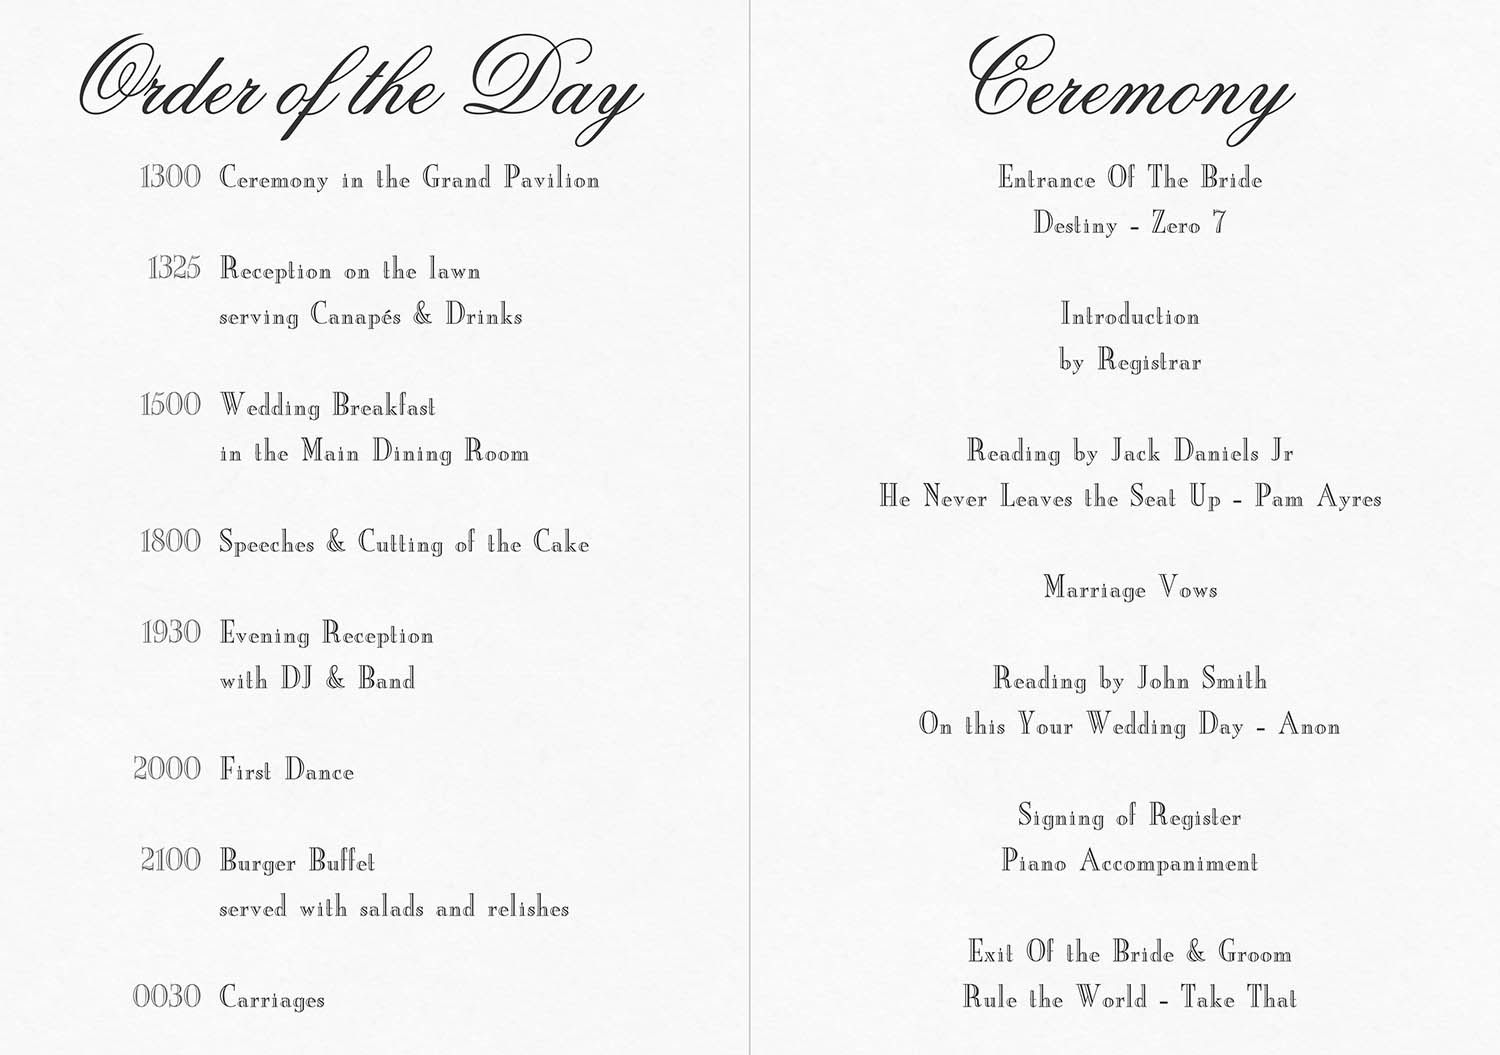 Civil Ceremony Order Of Service  Google Search  Wedding Ideas